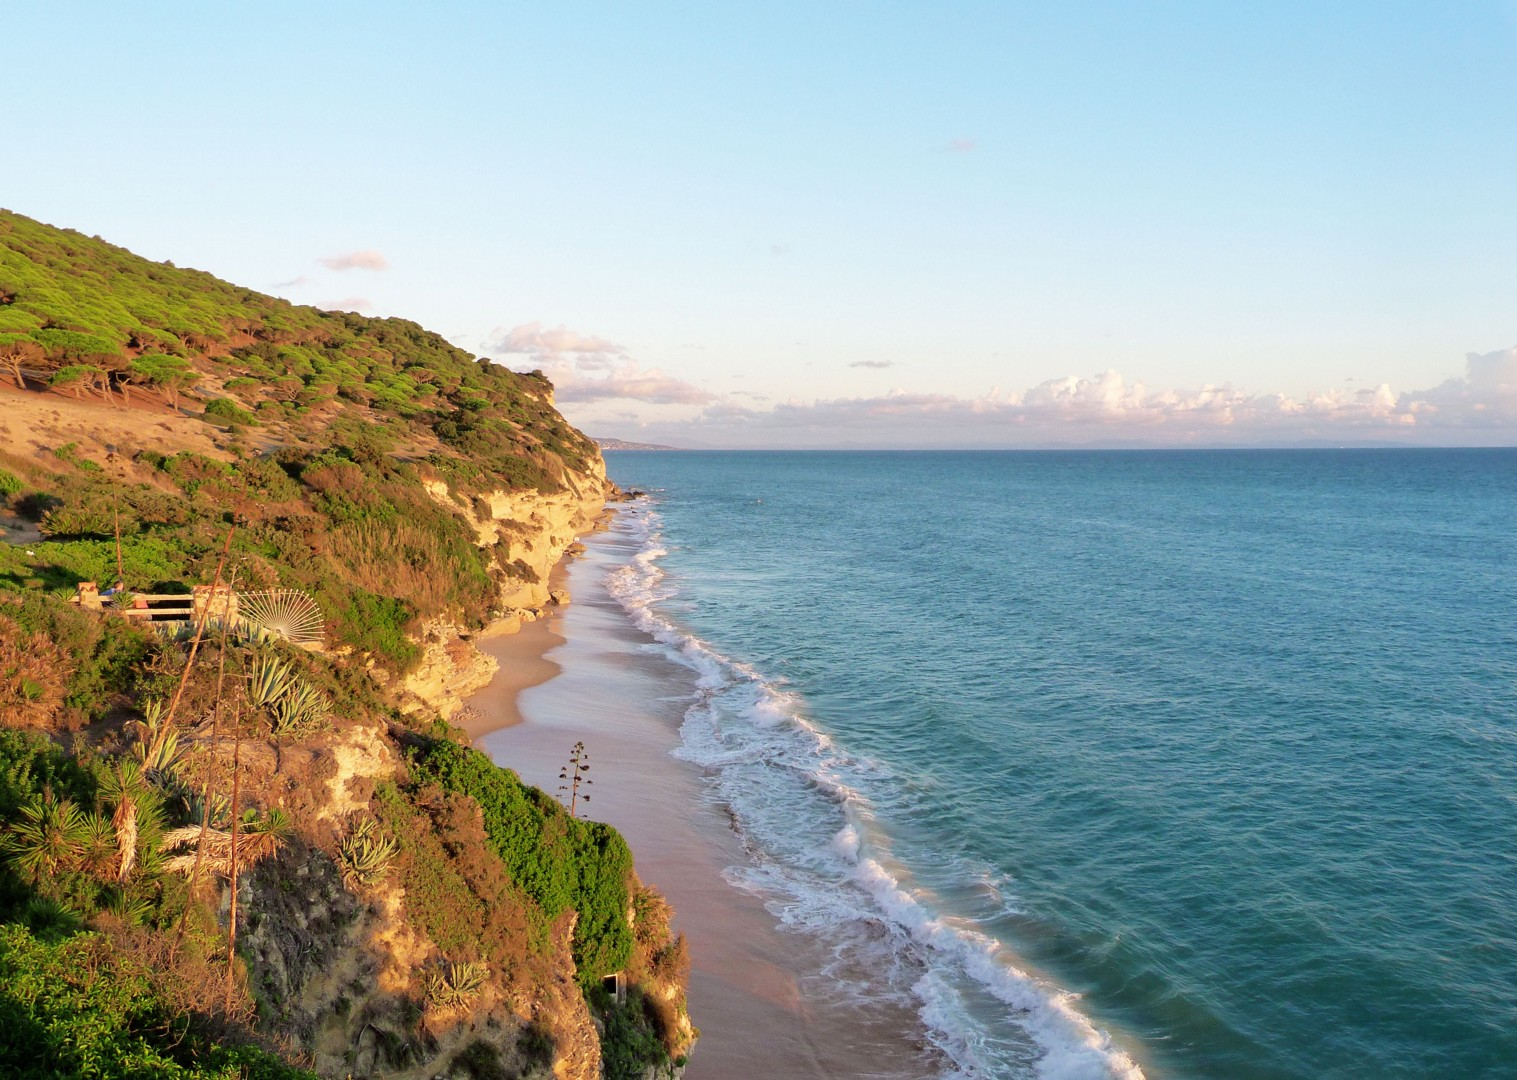 mediterranean-sea-southern-spain-andalucia-cape-to-cape-traverse-guided-road-cycling-holiday.jpg - Southern Spain - Andalucia - Cape to Cape Traverse - Guided Road Cycling Holiday - Road Cycling